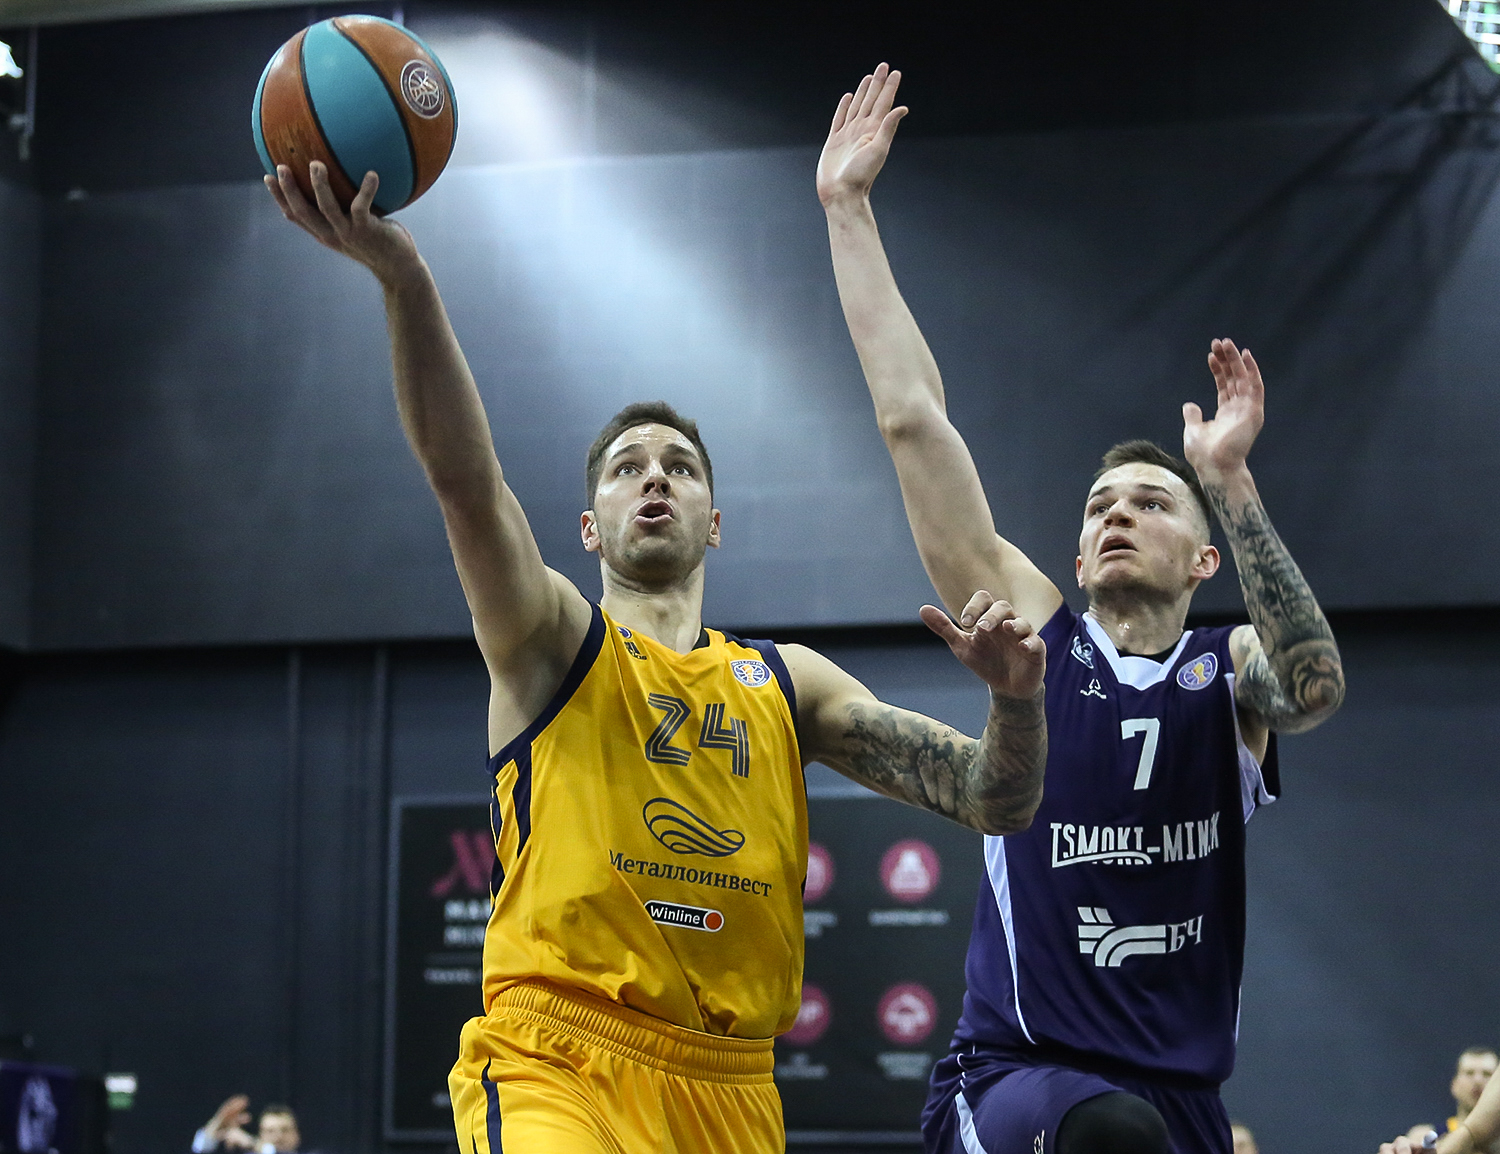 Khimki victorious in Minsk without Shved